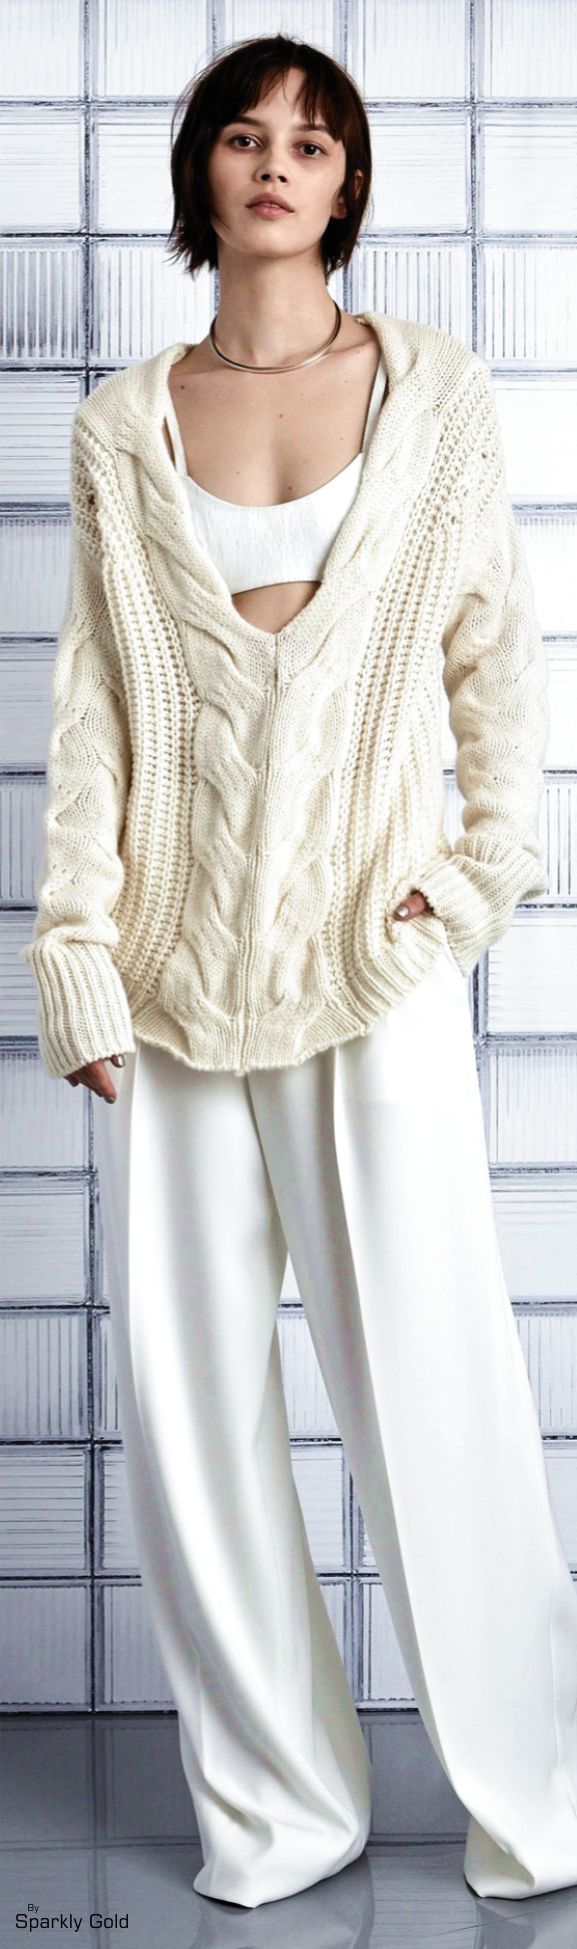 Tess Giberson Resort 2016 women fashion outfit clothing style apparel @roressclothes closet ideas